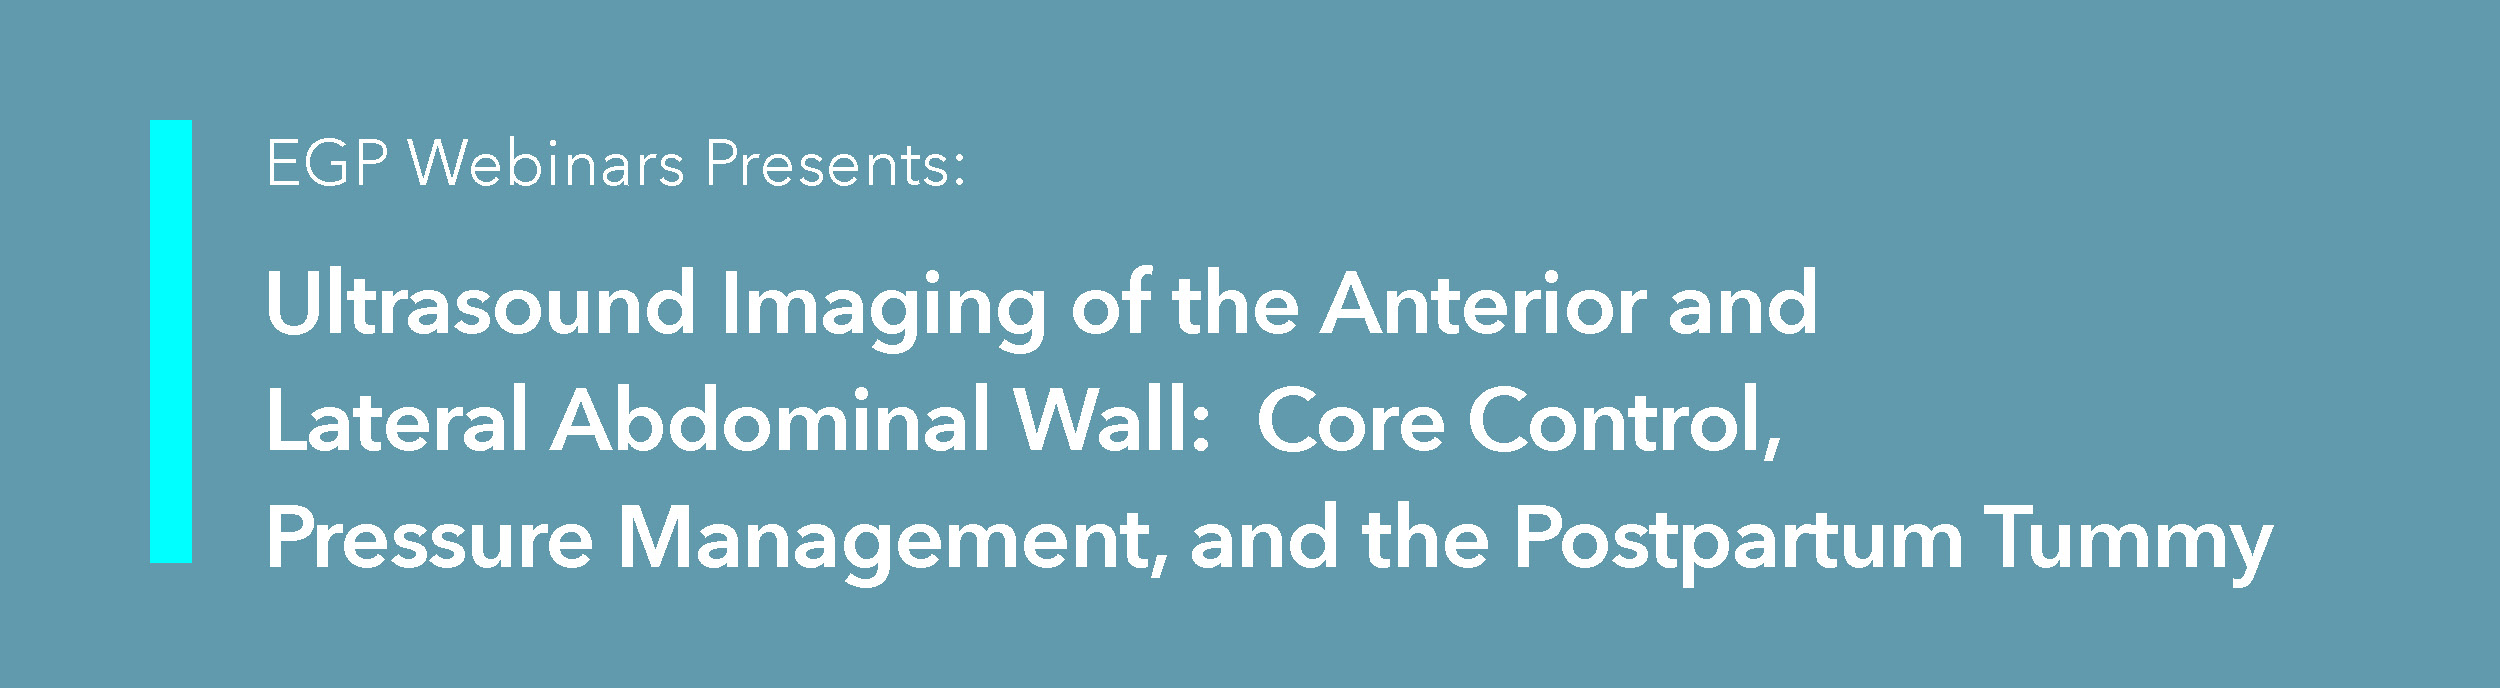 https://echogenportal.com/wp-content/uploads/2021/05/EchoGen-Banner-July-24-US-Imaging-of-the-Anterior-and-Lateral-Abdominal-Wall.jpg